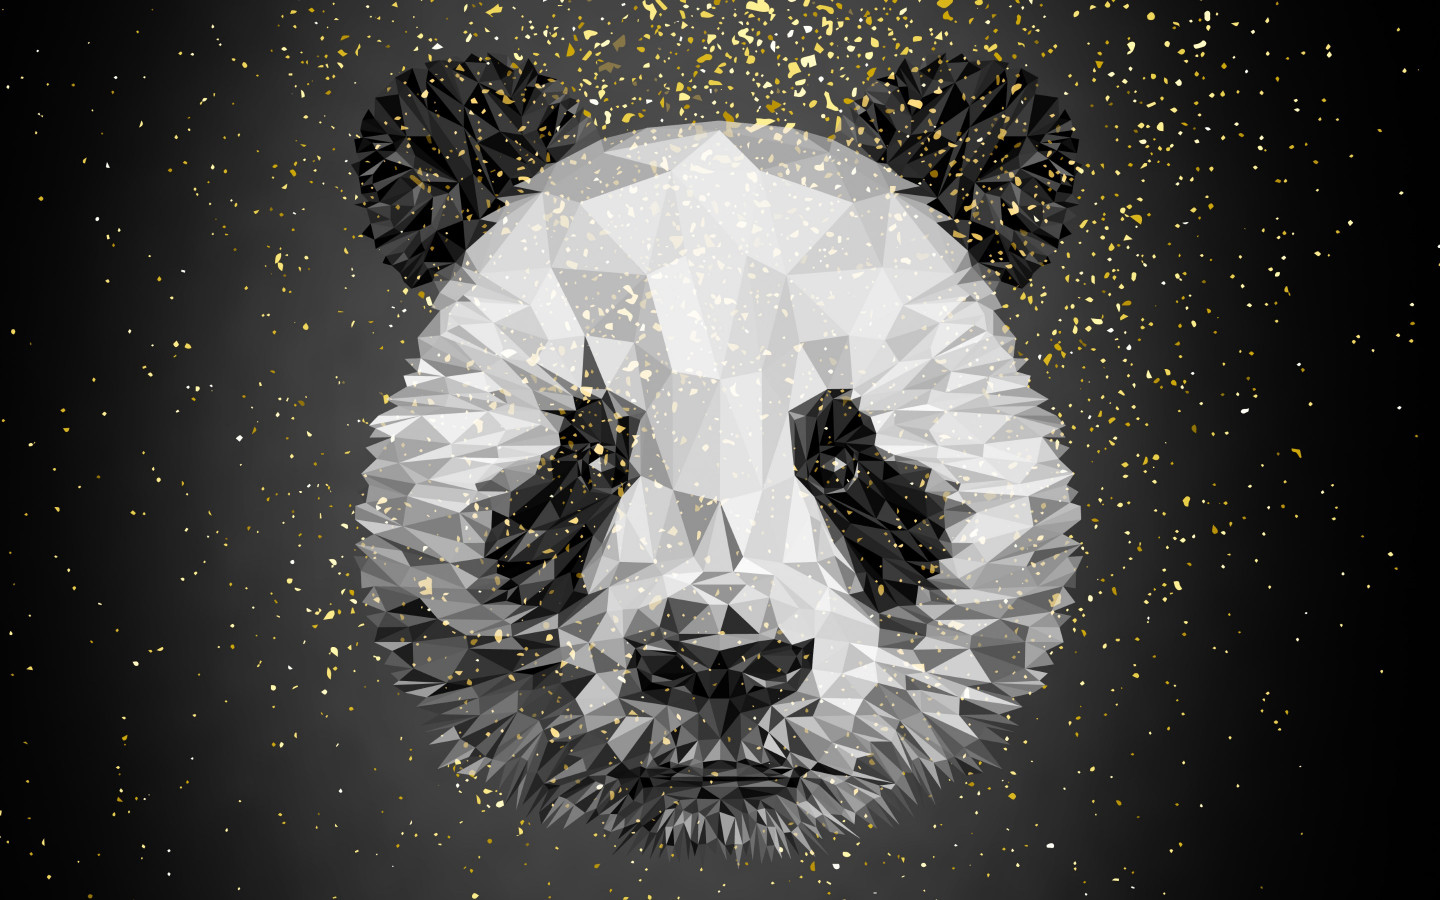 Panda bear illustration wallpaper 1440x900